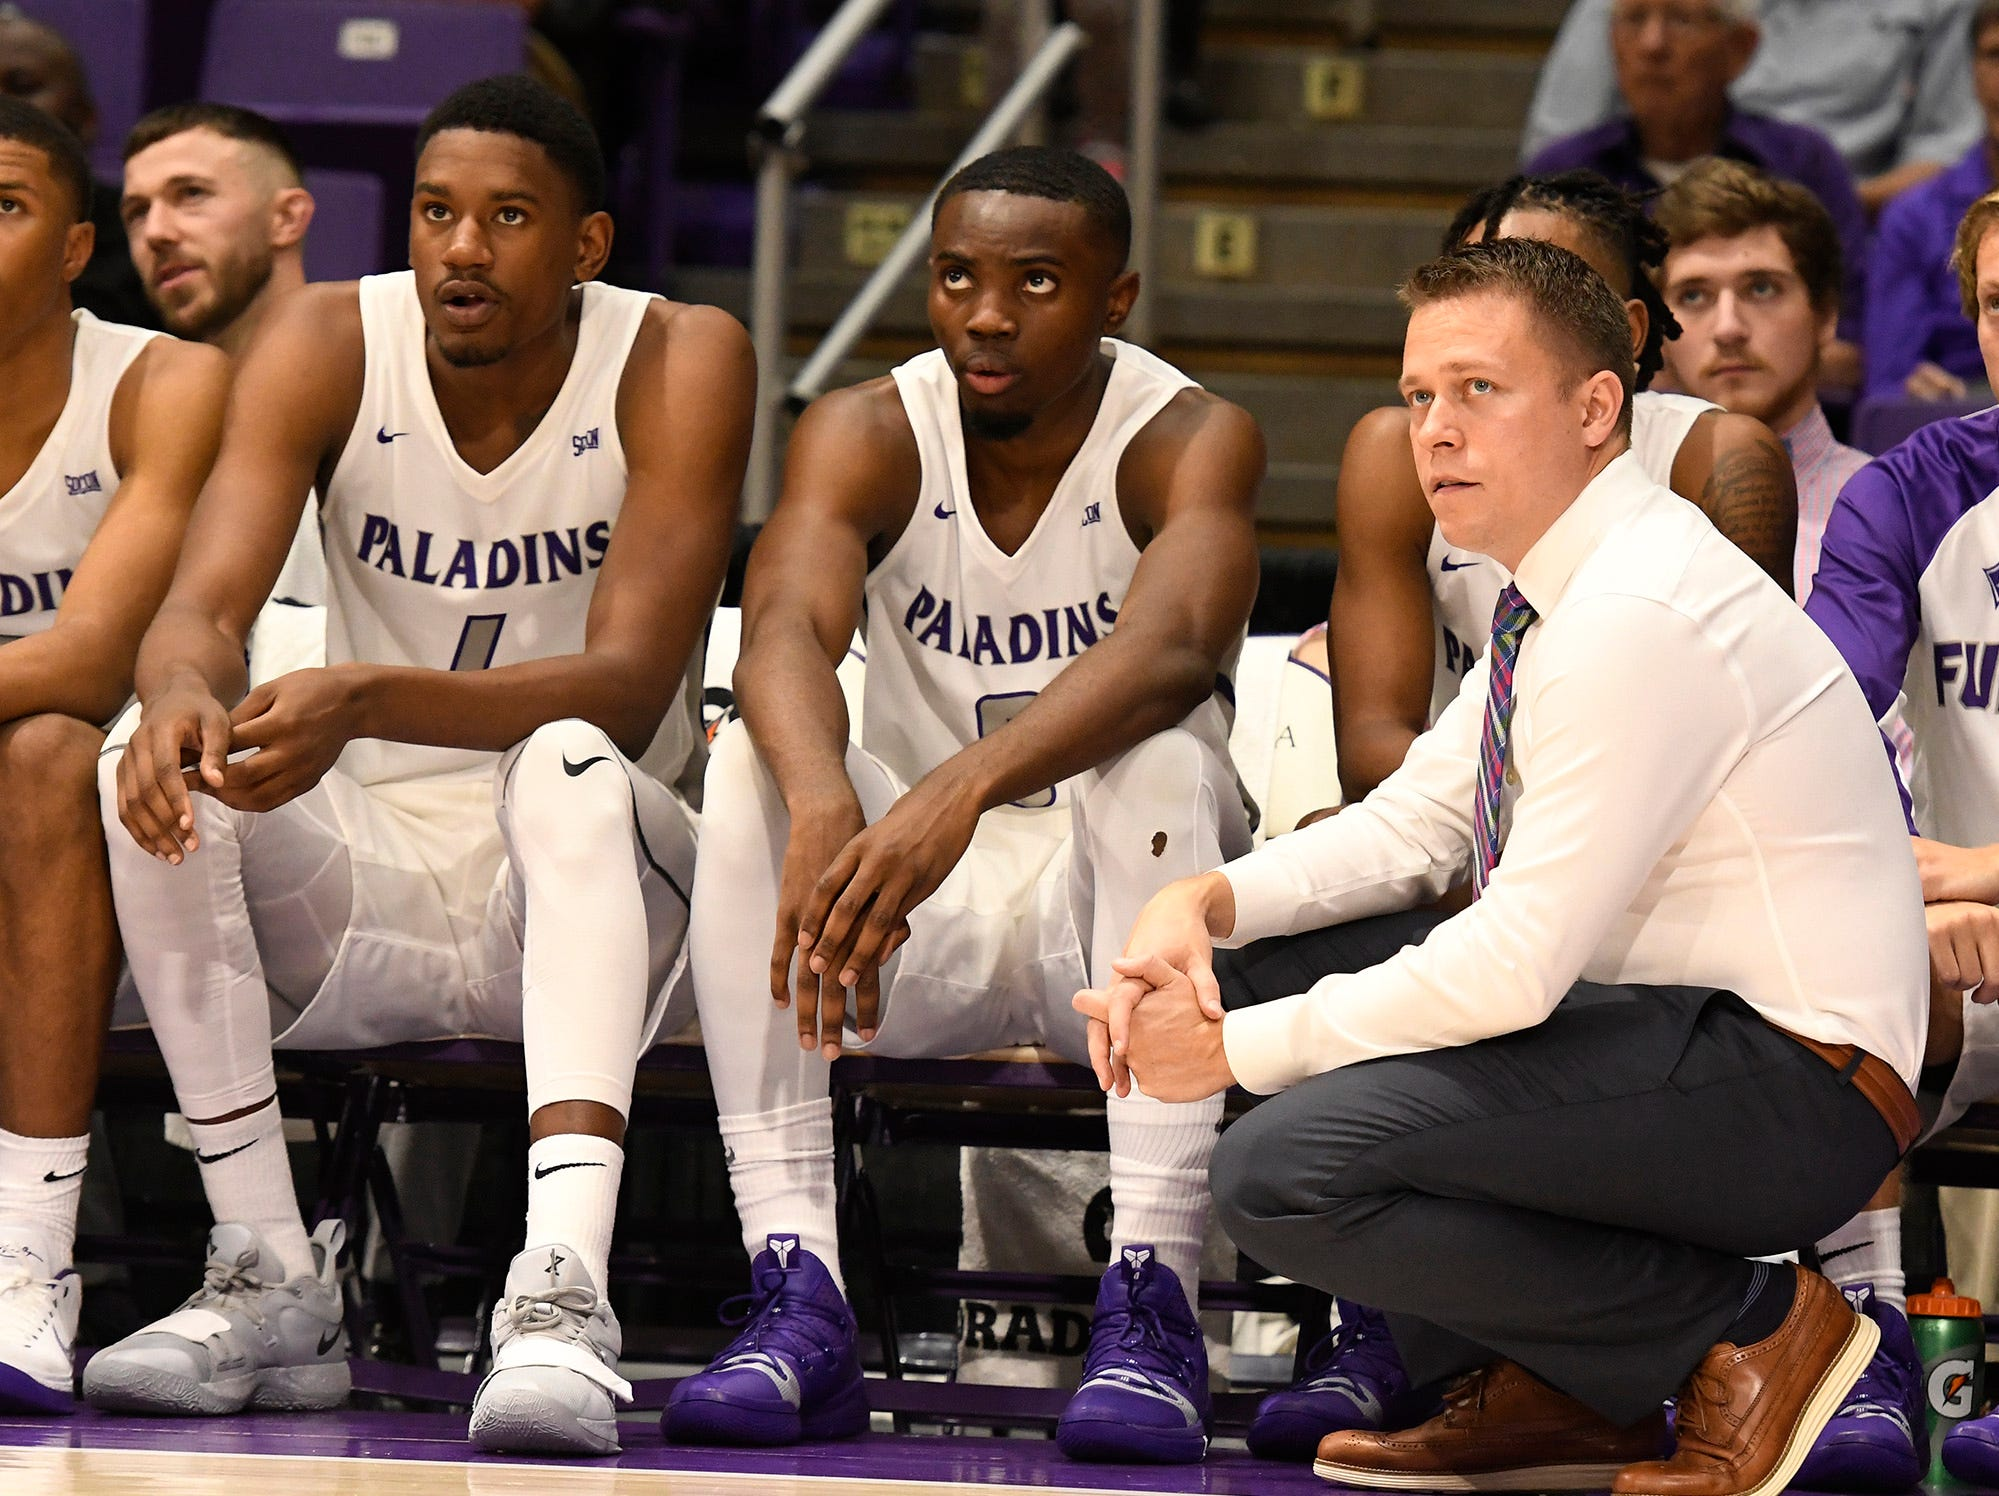 Furman head basketball coach Bob Richey, right, surveys action against Bob Jones Tuesday, November 6, 2018, at Timmons Arena.